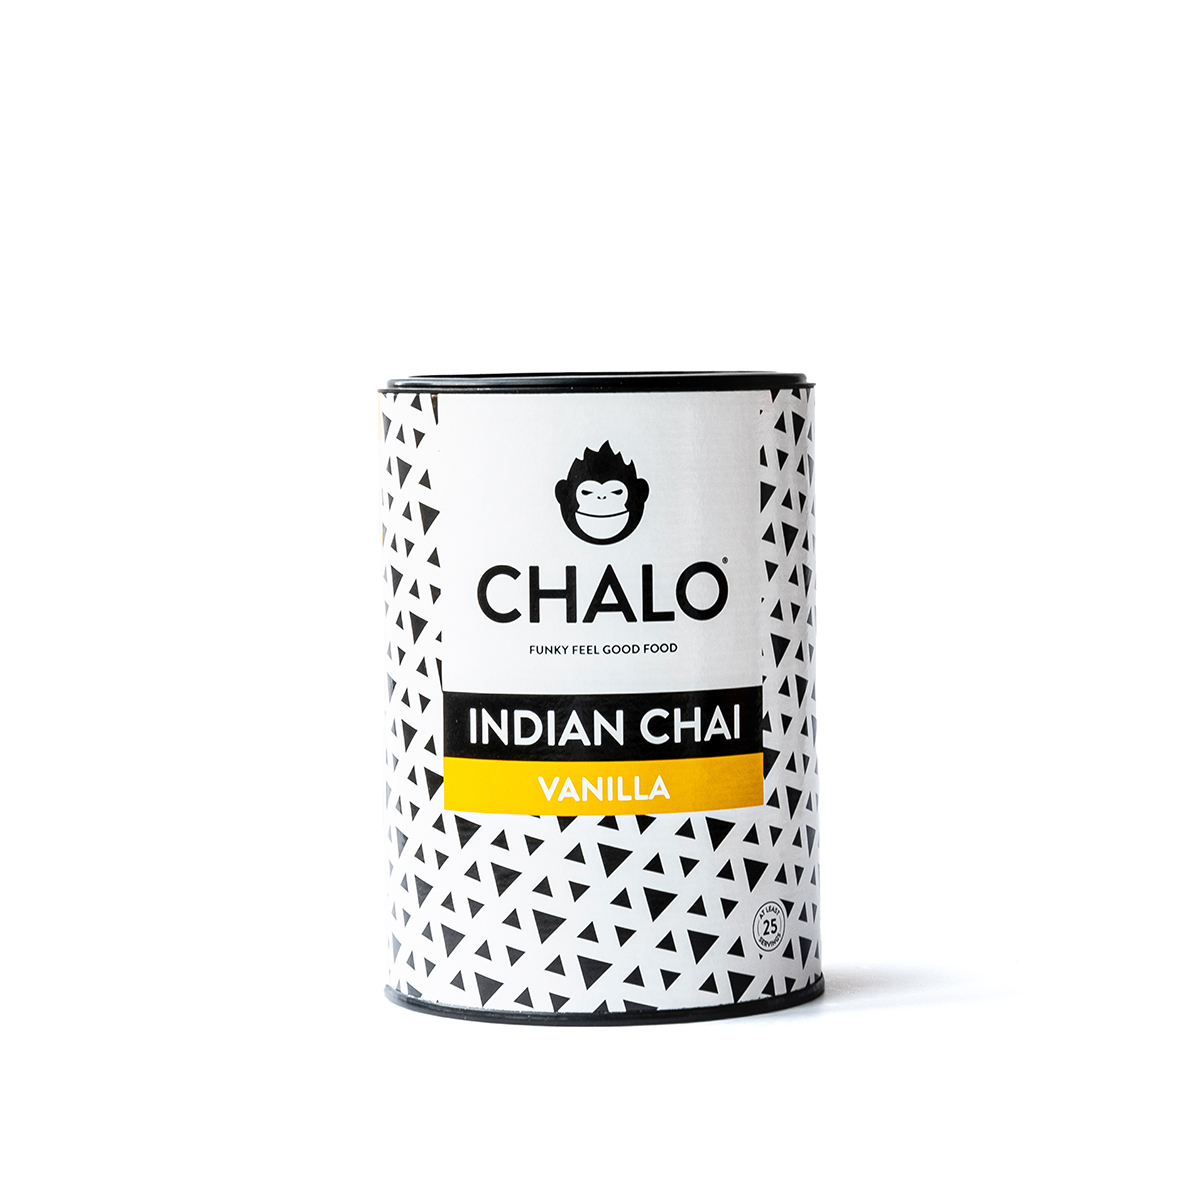 Indian Chai - Vanilla Chai latte